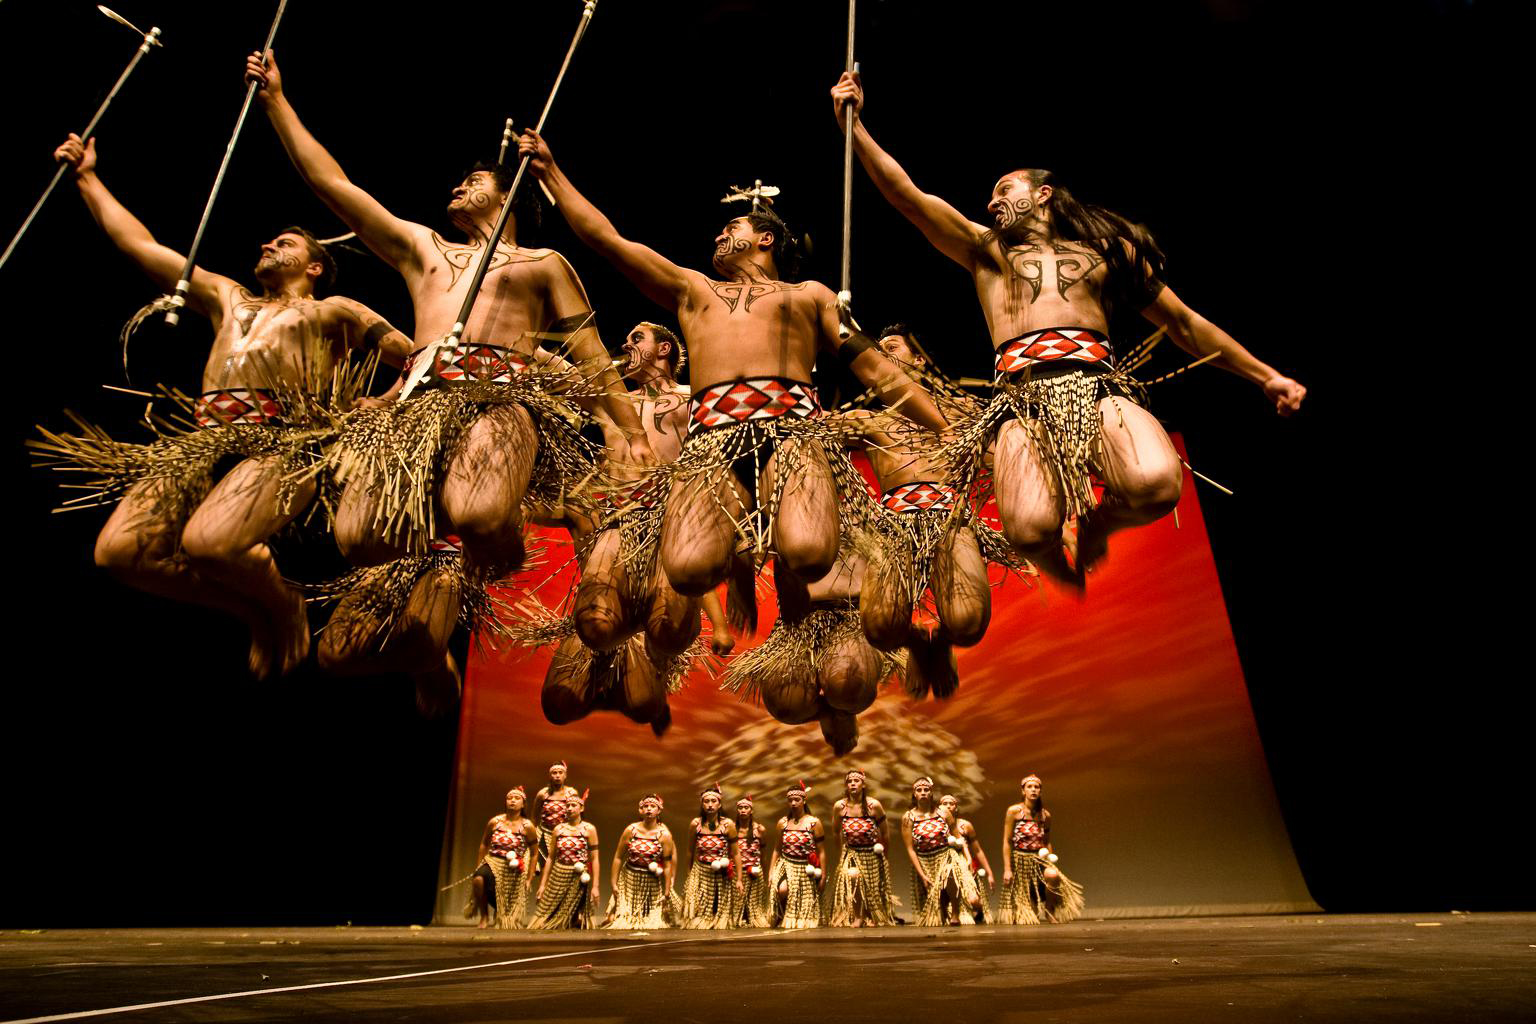 the maori haka It must be stressed that the haka is not merely a dance in maori culture it is an integral part of tribal mythology and tradition, reflecting the identity and history of each tribe, and the strength and vigour of their warriors.